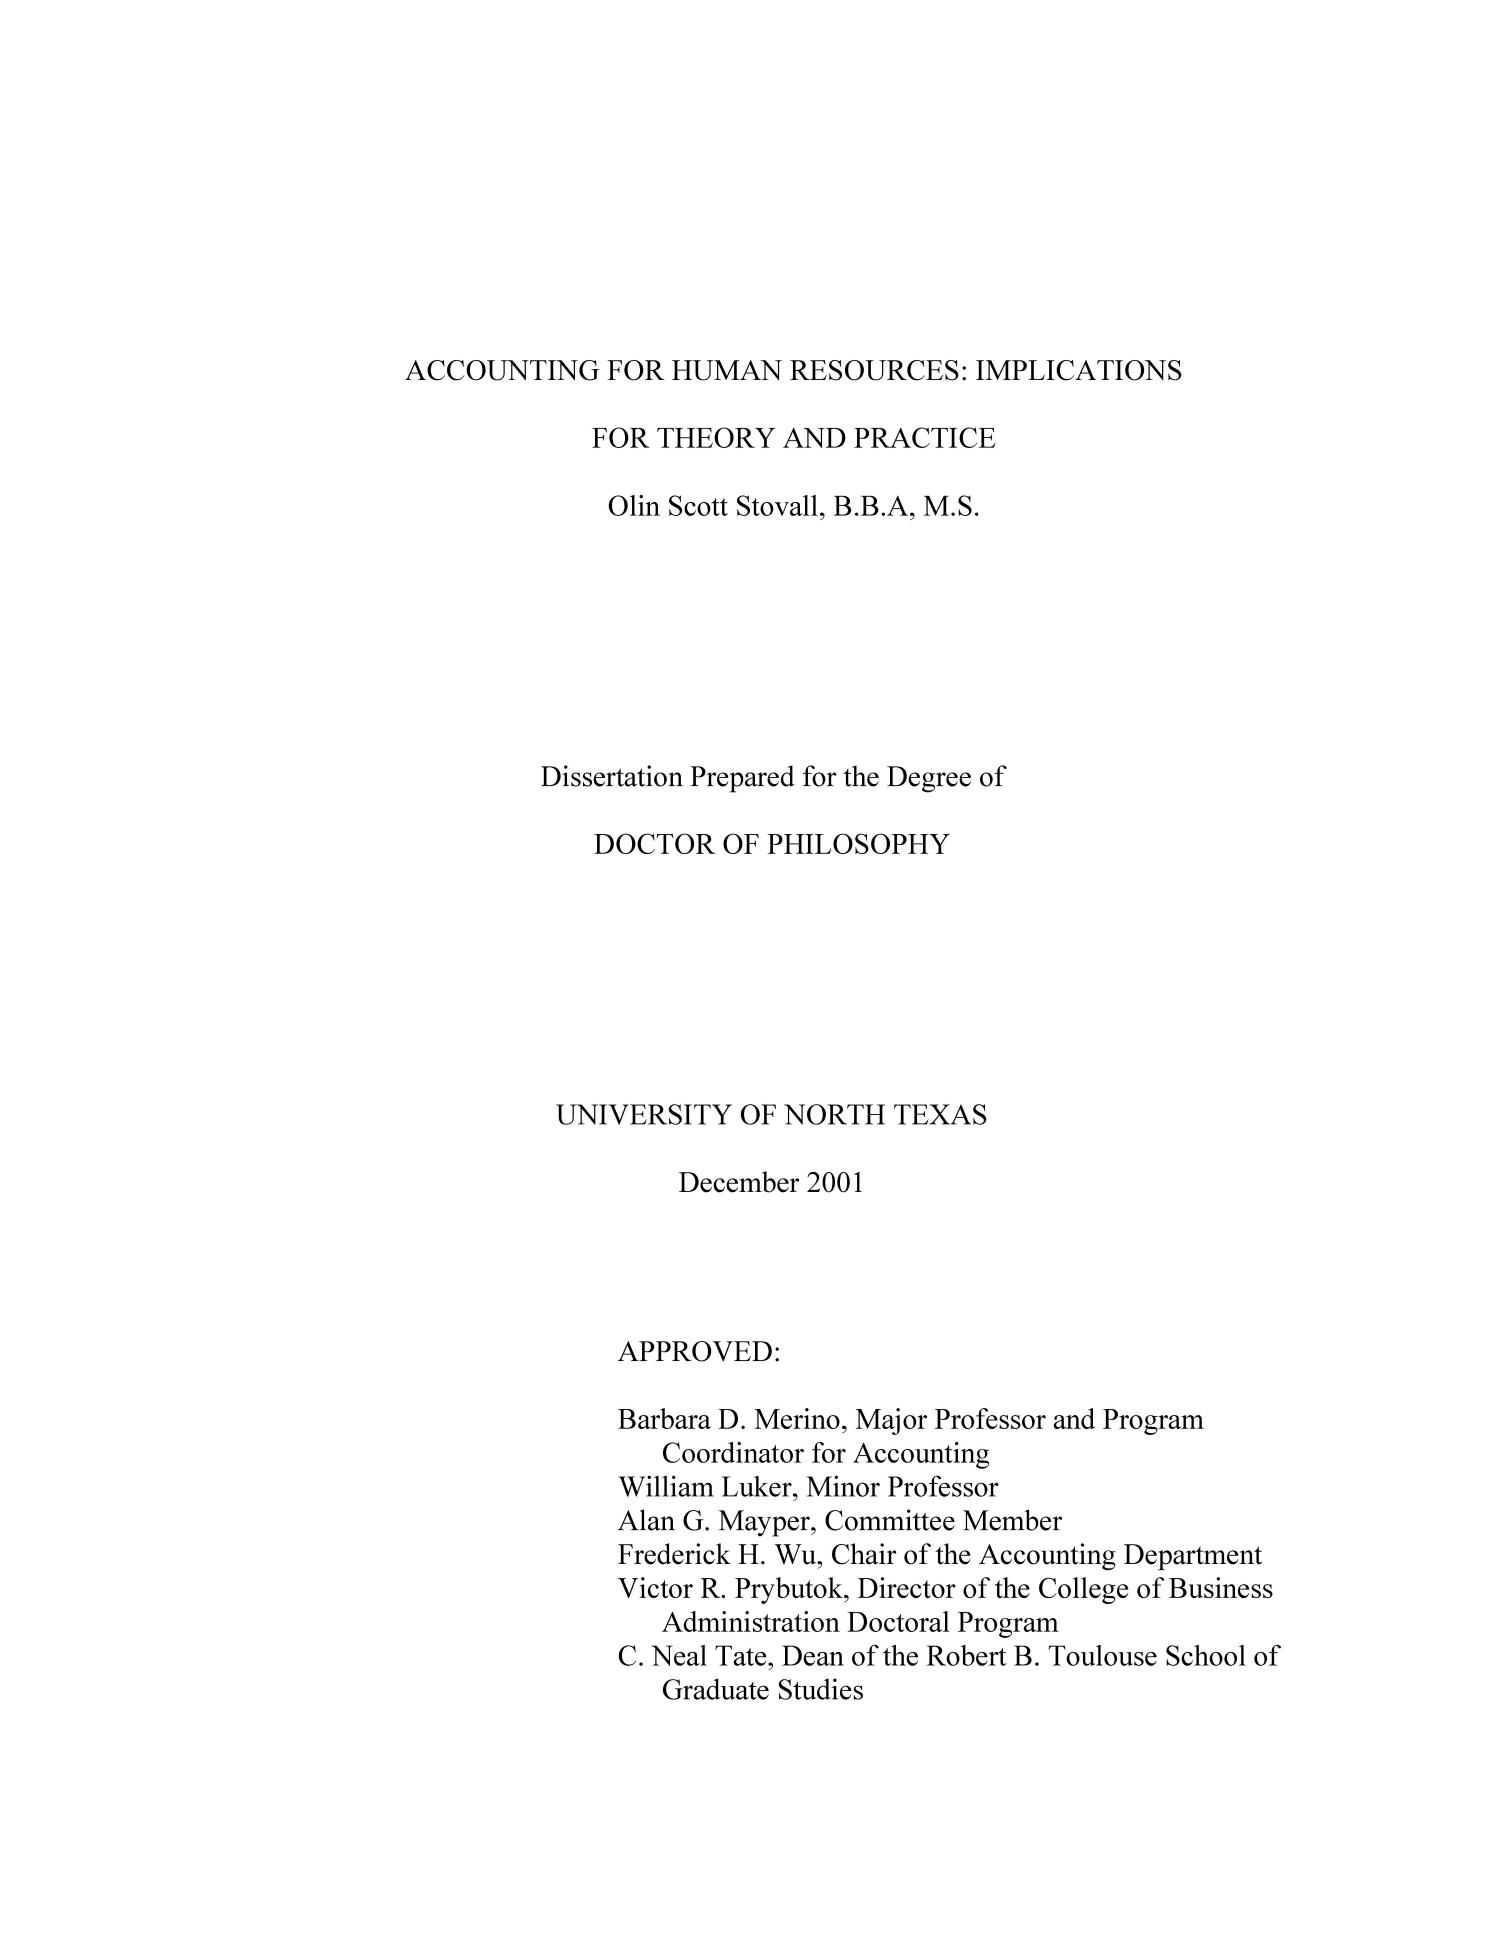 Phd thesis on hrm practices